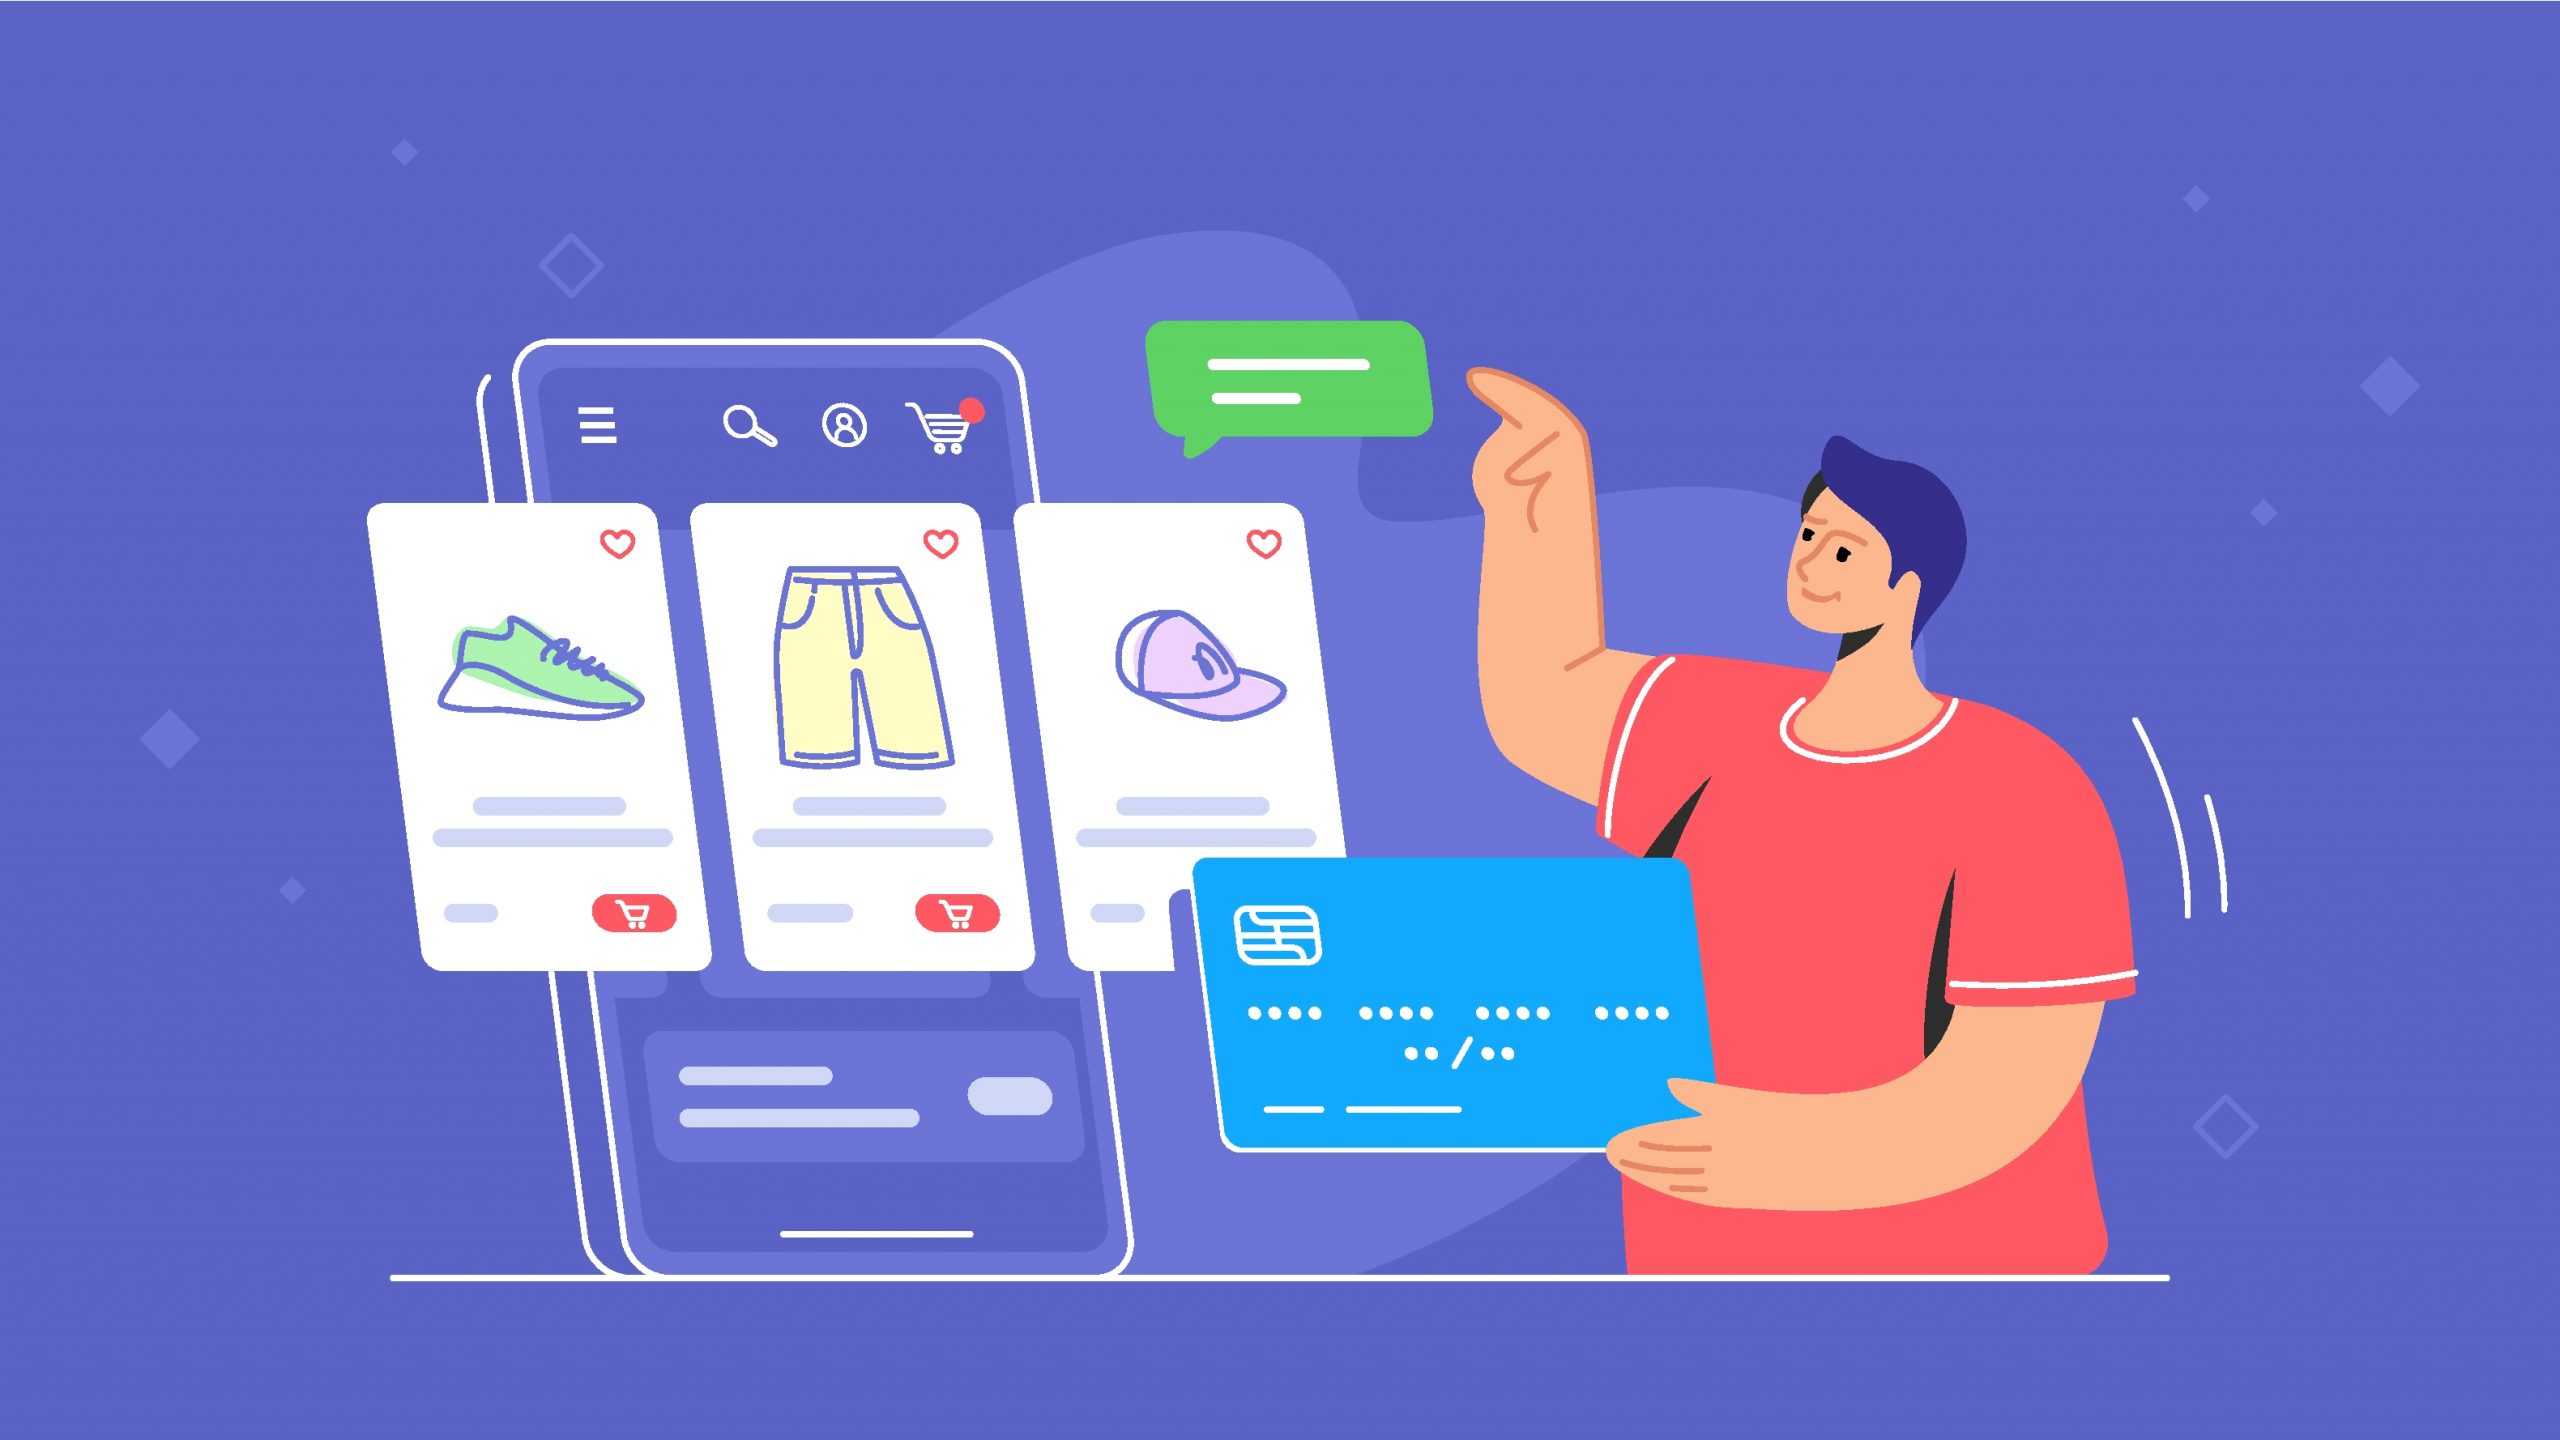 Use Cases Of AI Chatbots For Ecommerce.